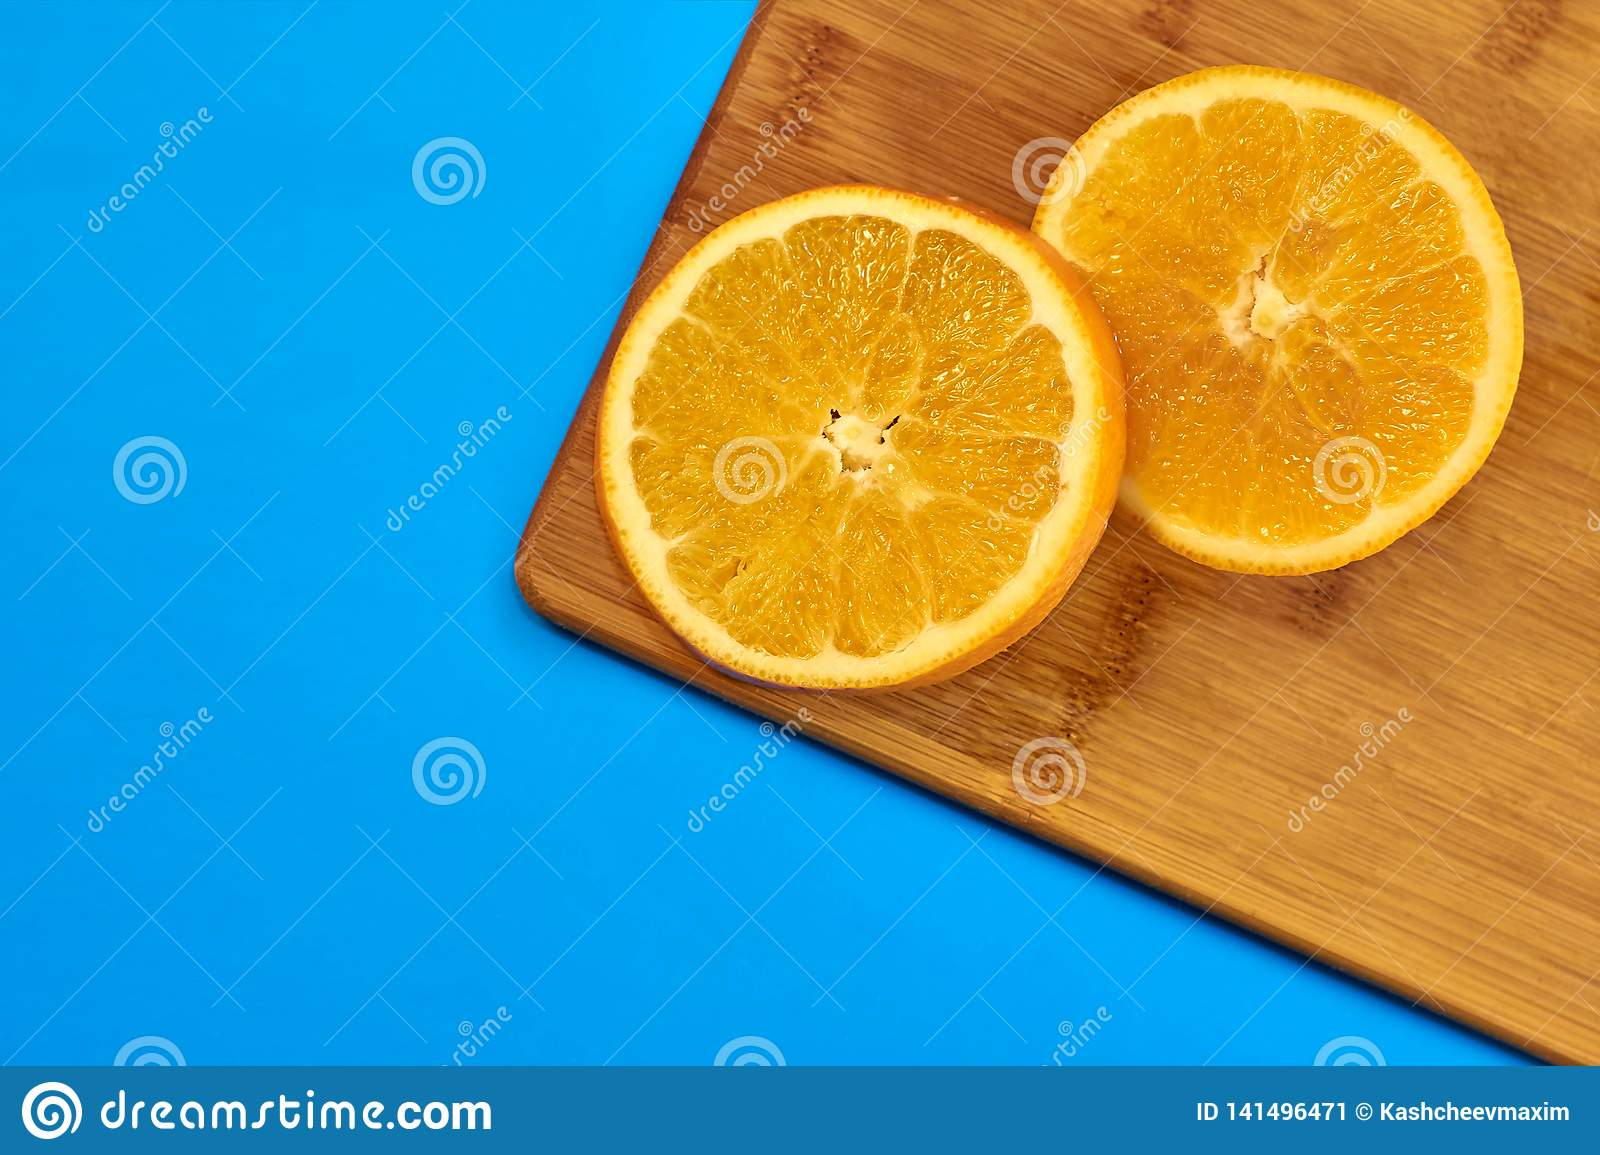 Food for fitness, healthy lifestyle, flat lay with fresh fat-burning fruits, slices of orange on the kitchen cutting board